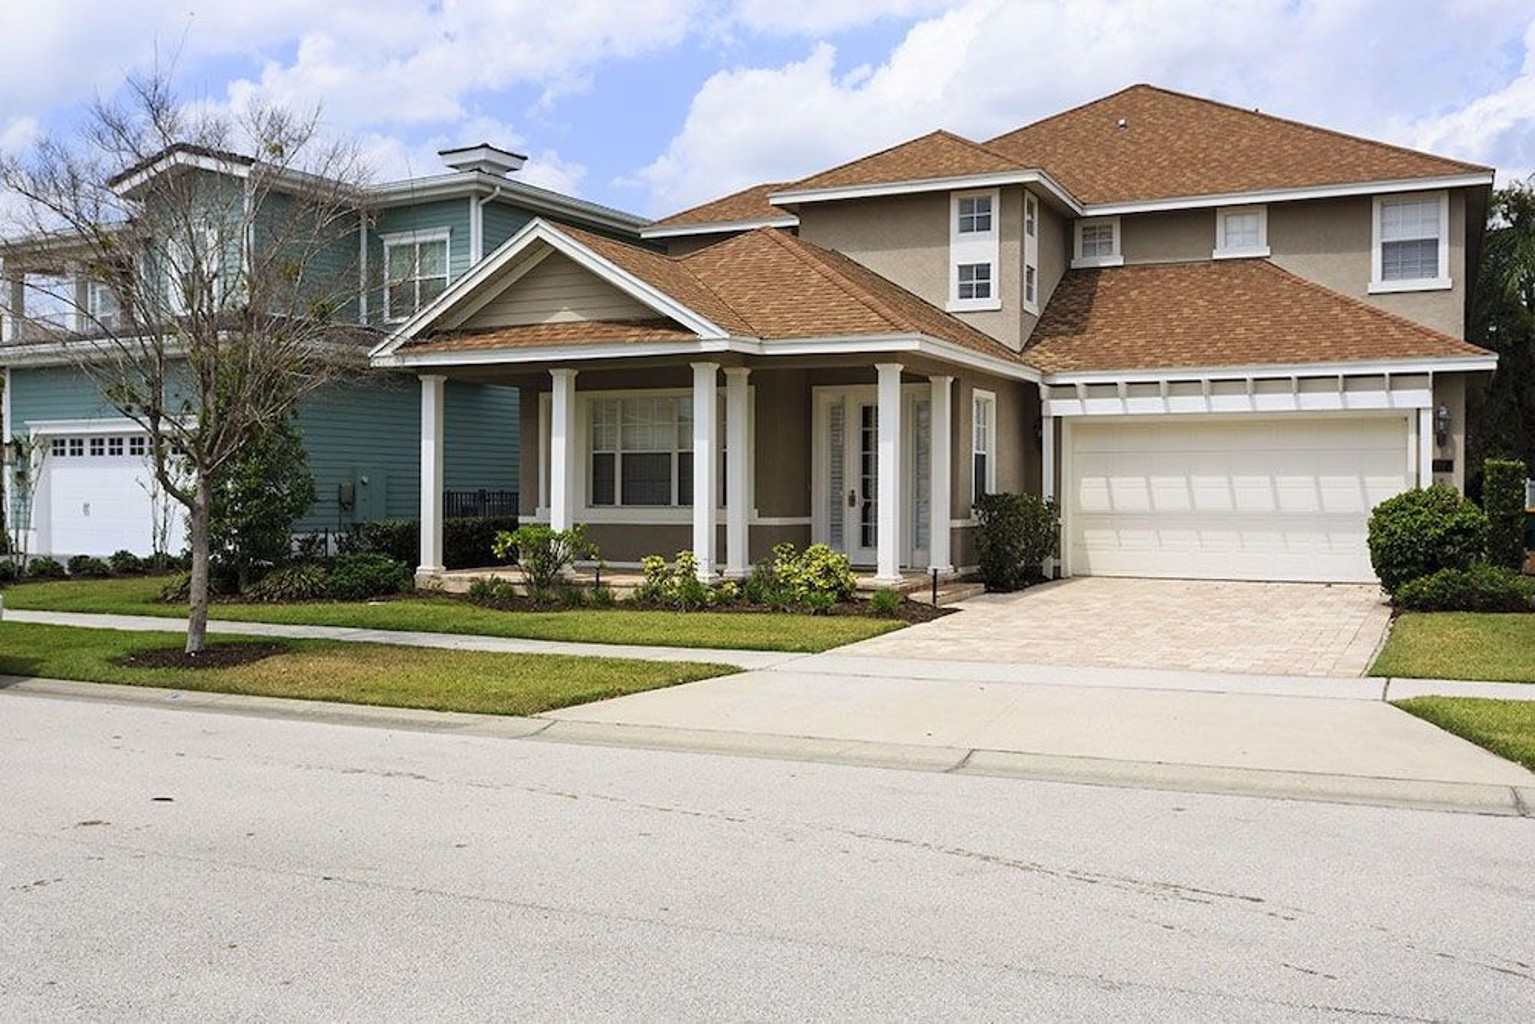 The Sunshine Luxury With Golf View 4 Br Home By Redawning